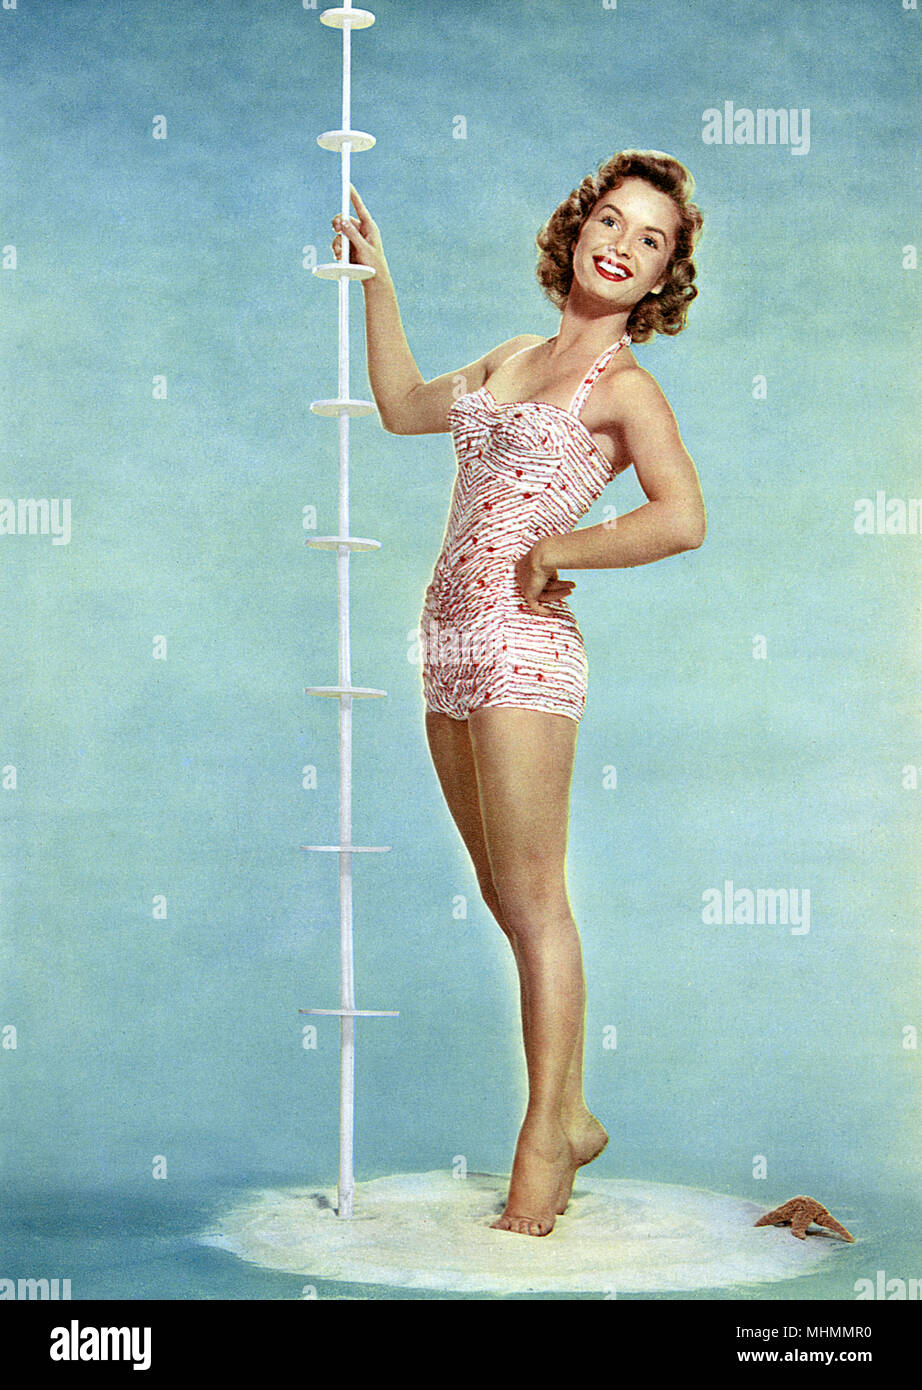 DEBBIE REYNOLDS (Mary Frances Reynolds) American TV and film actress, in bikini.      Date: 1944-1955 - Stock Image